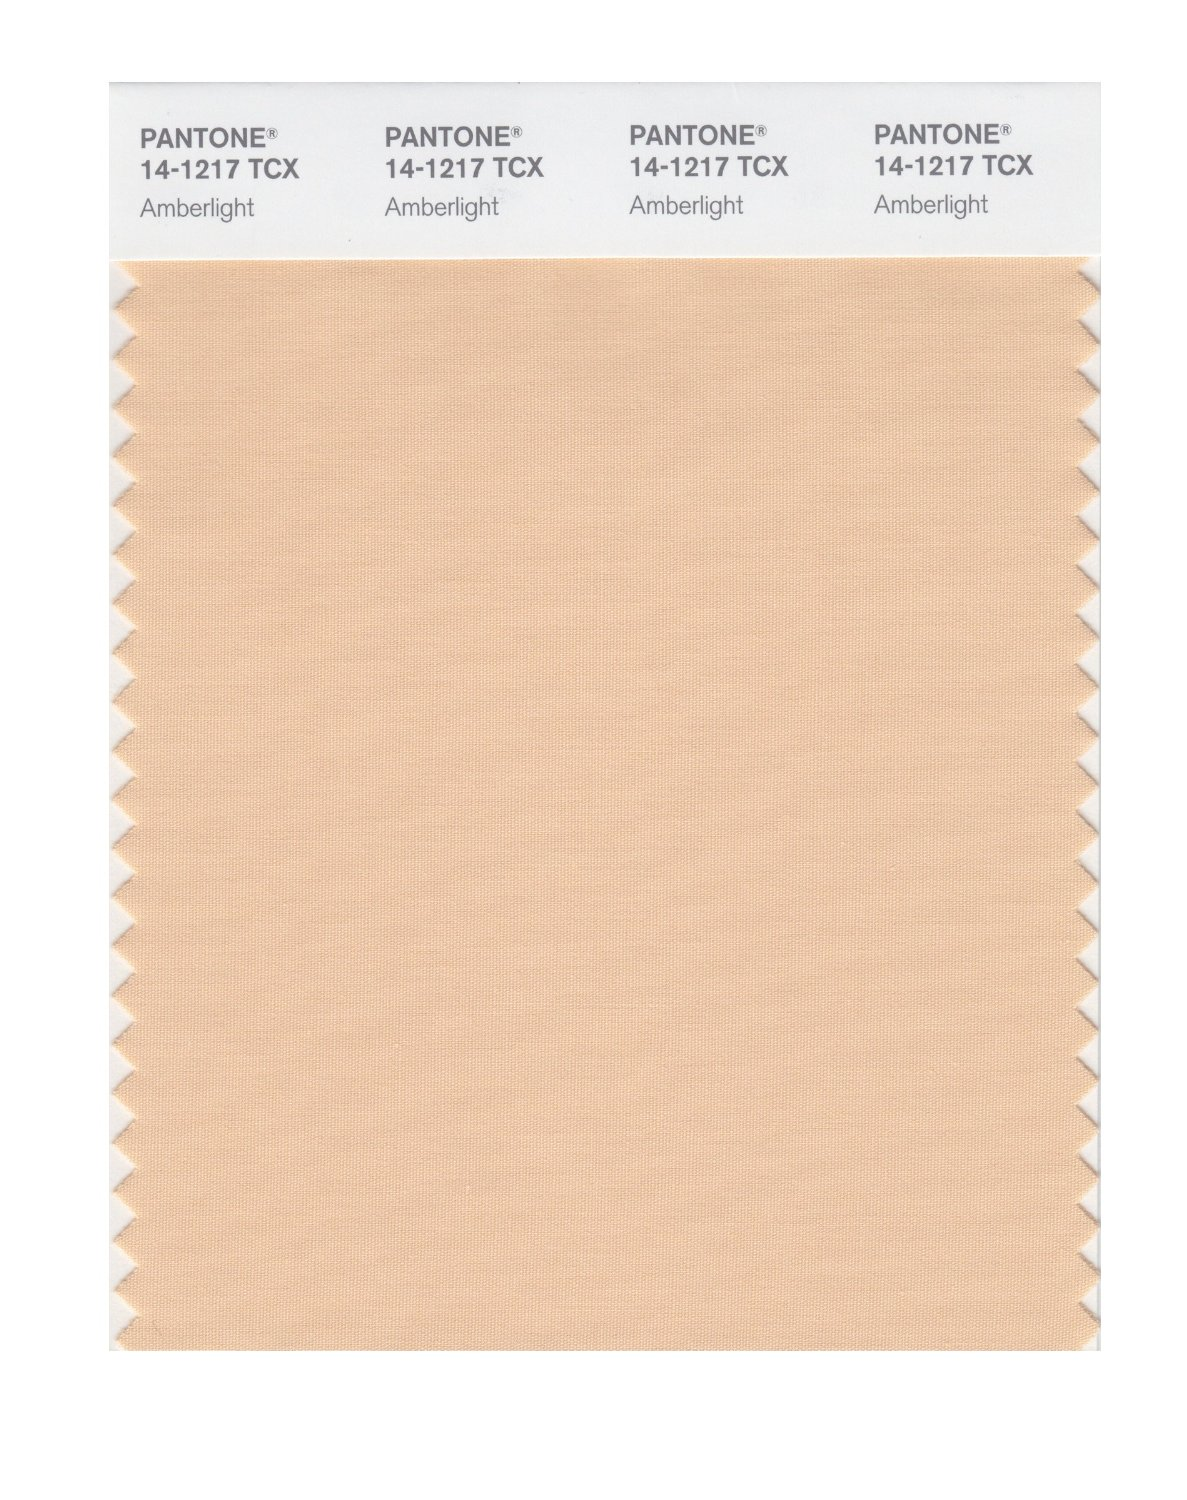 Pantone Smart Swatch 14-1217 Amberlight